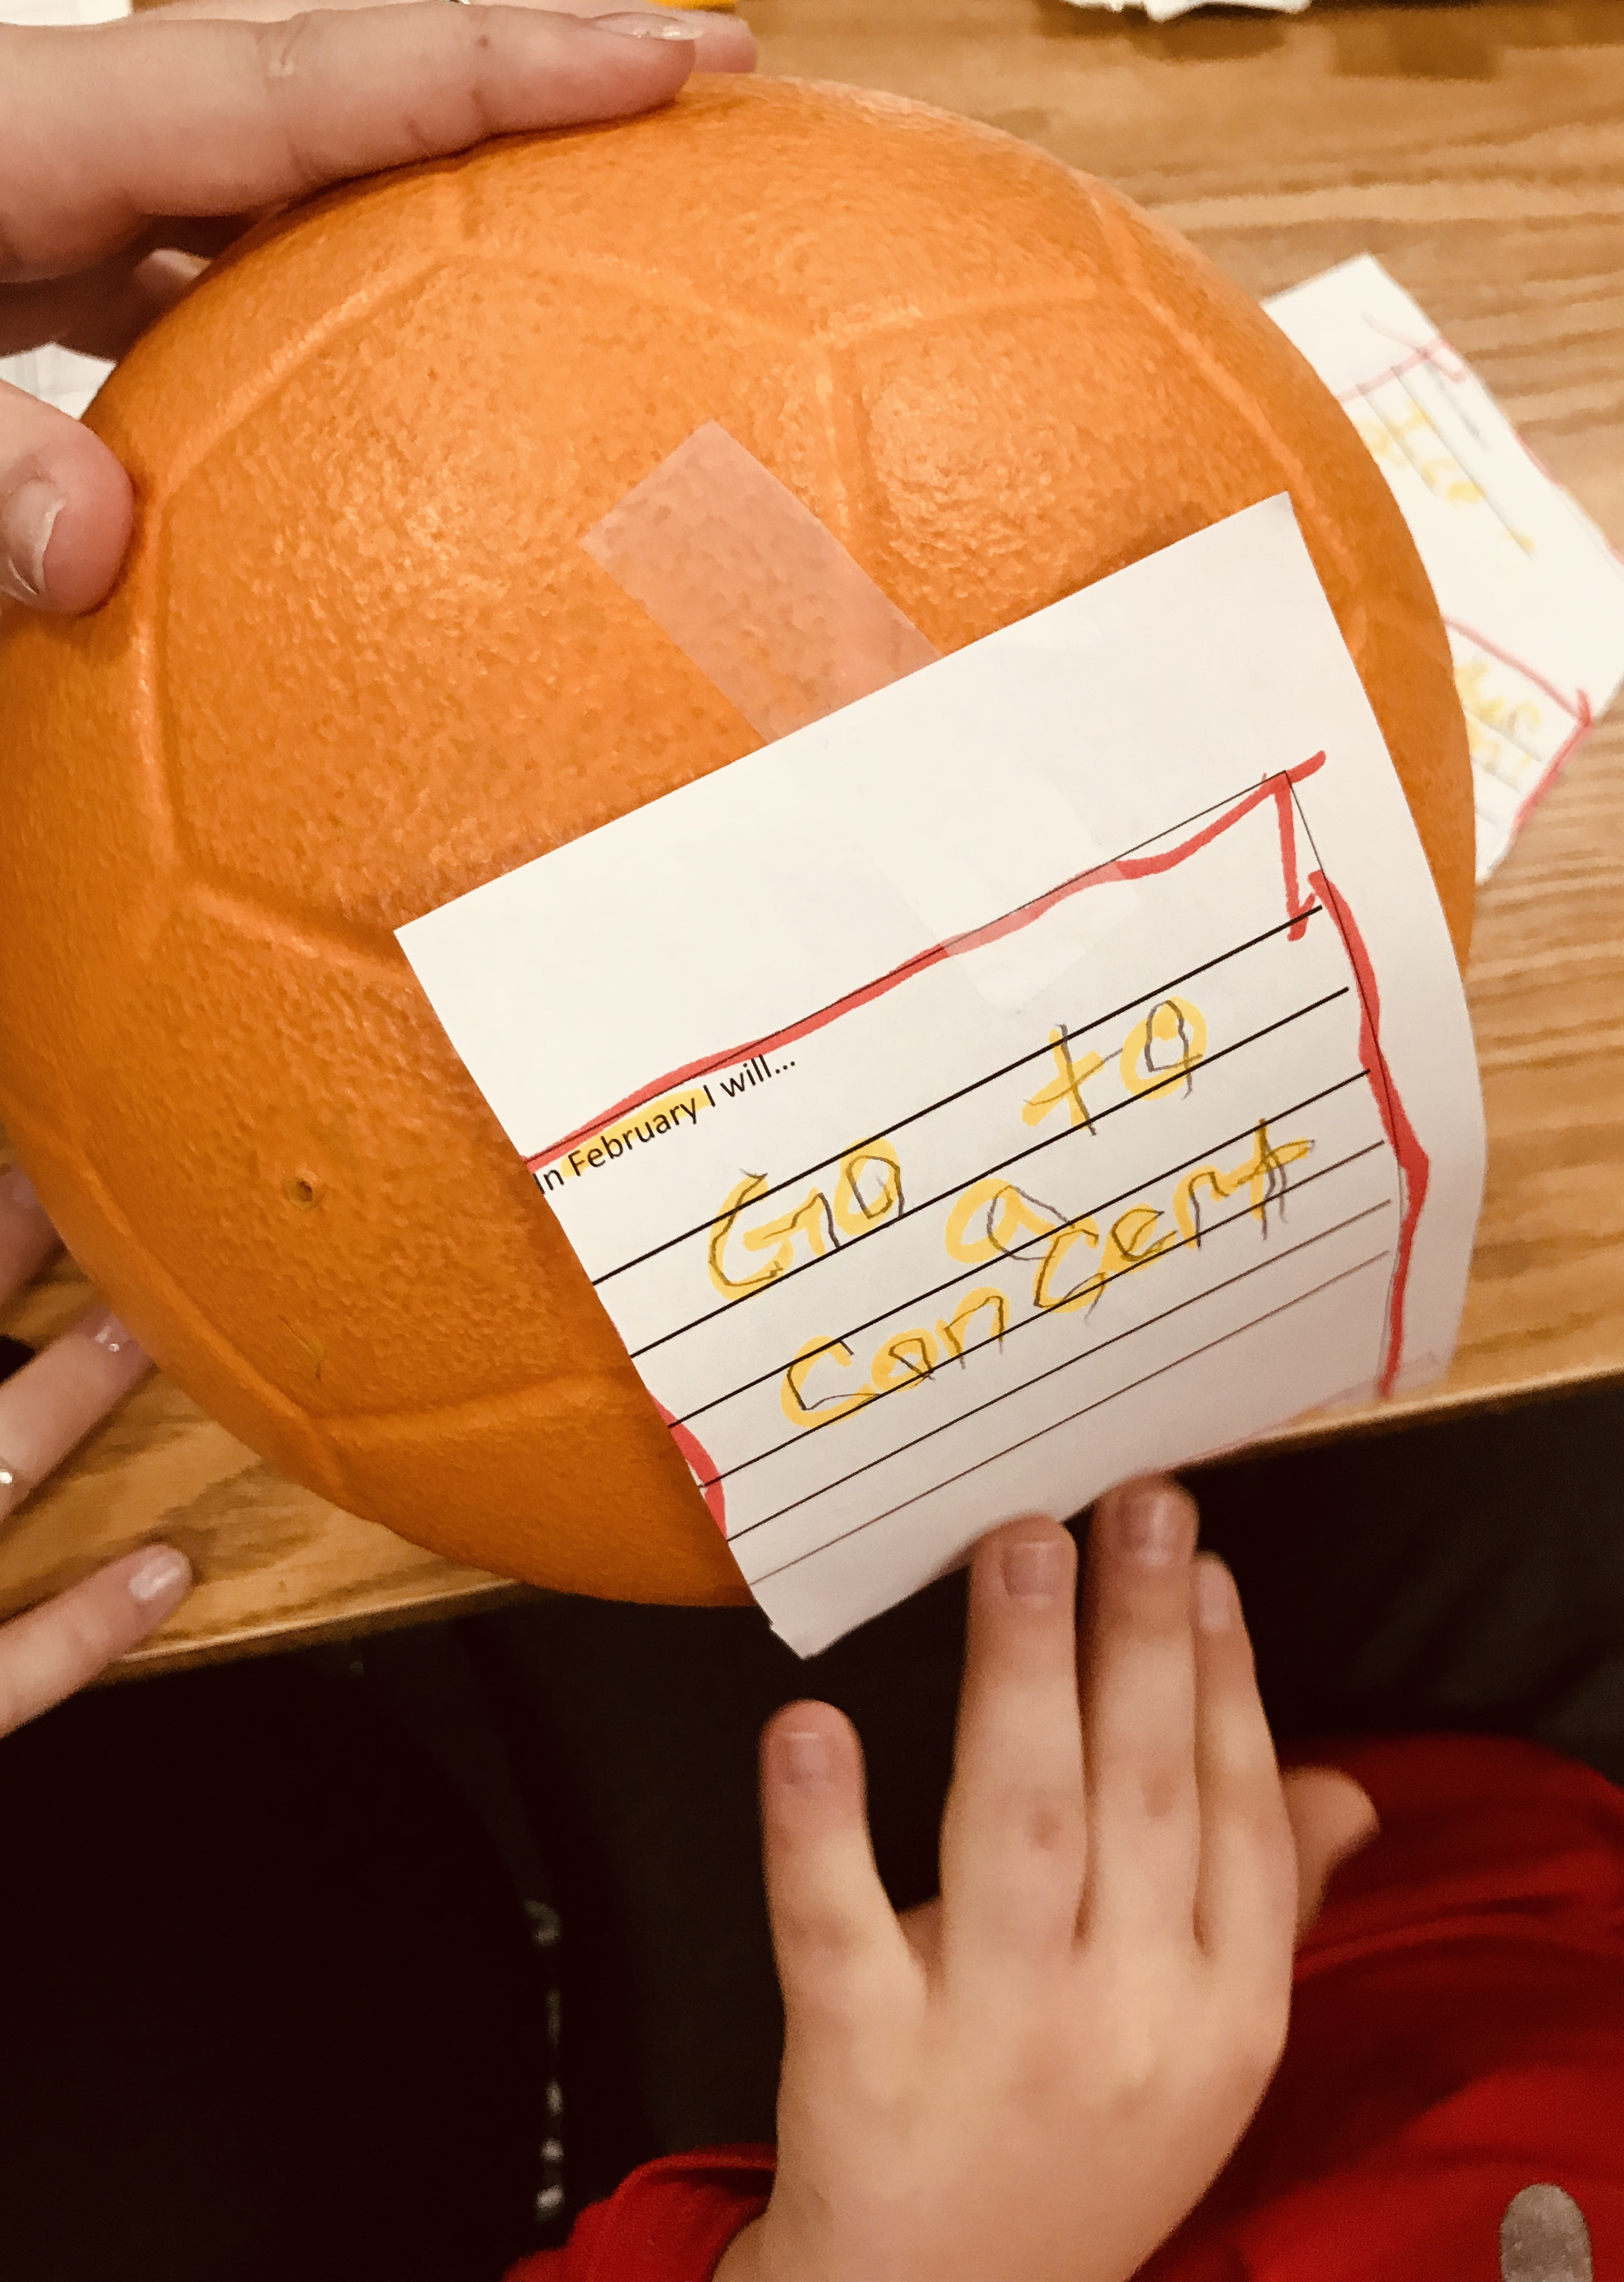 Taping resolutions to soccer ball